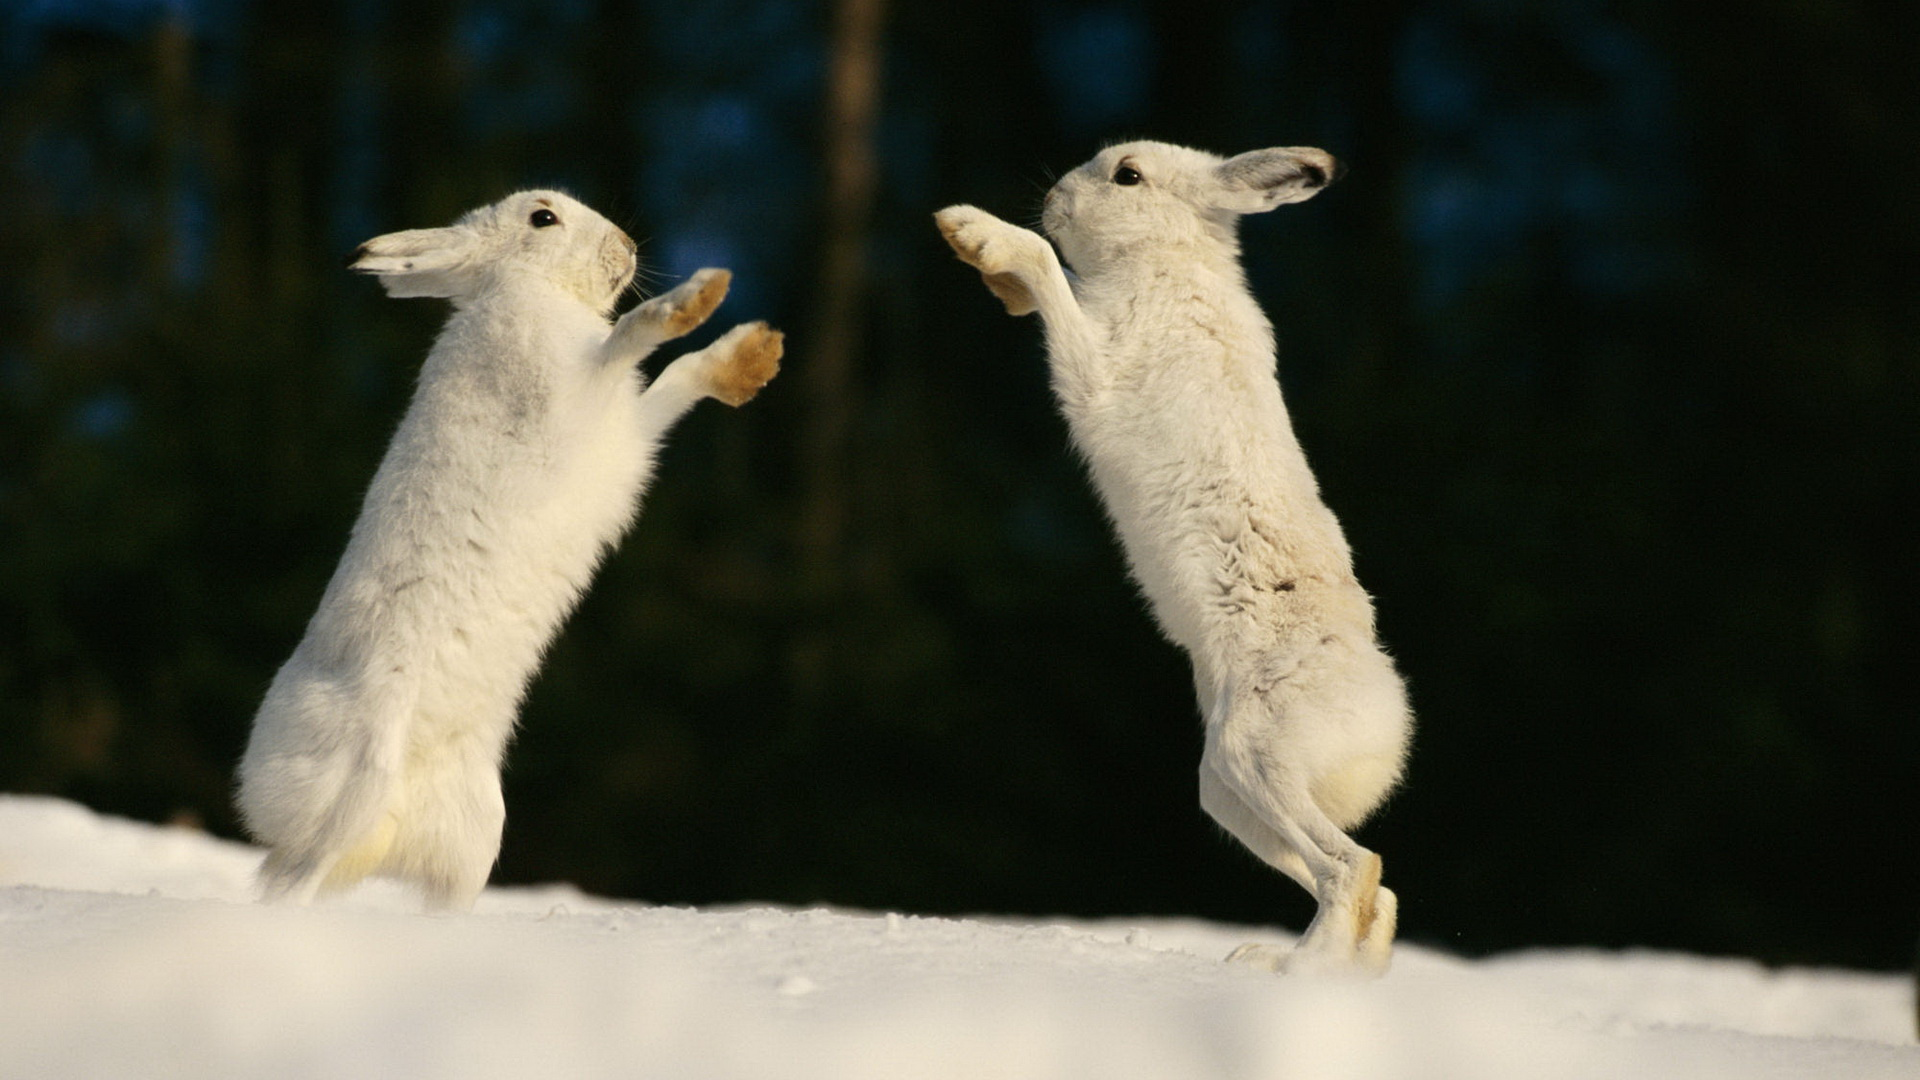 click to free download the wallpaper--Free Download Cute Animals Picture - Two Dancing Rabbits, the Snowy World, Green Plants, Looking Attractive 1920X1080 free wallpaper download